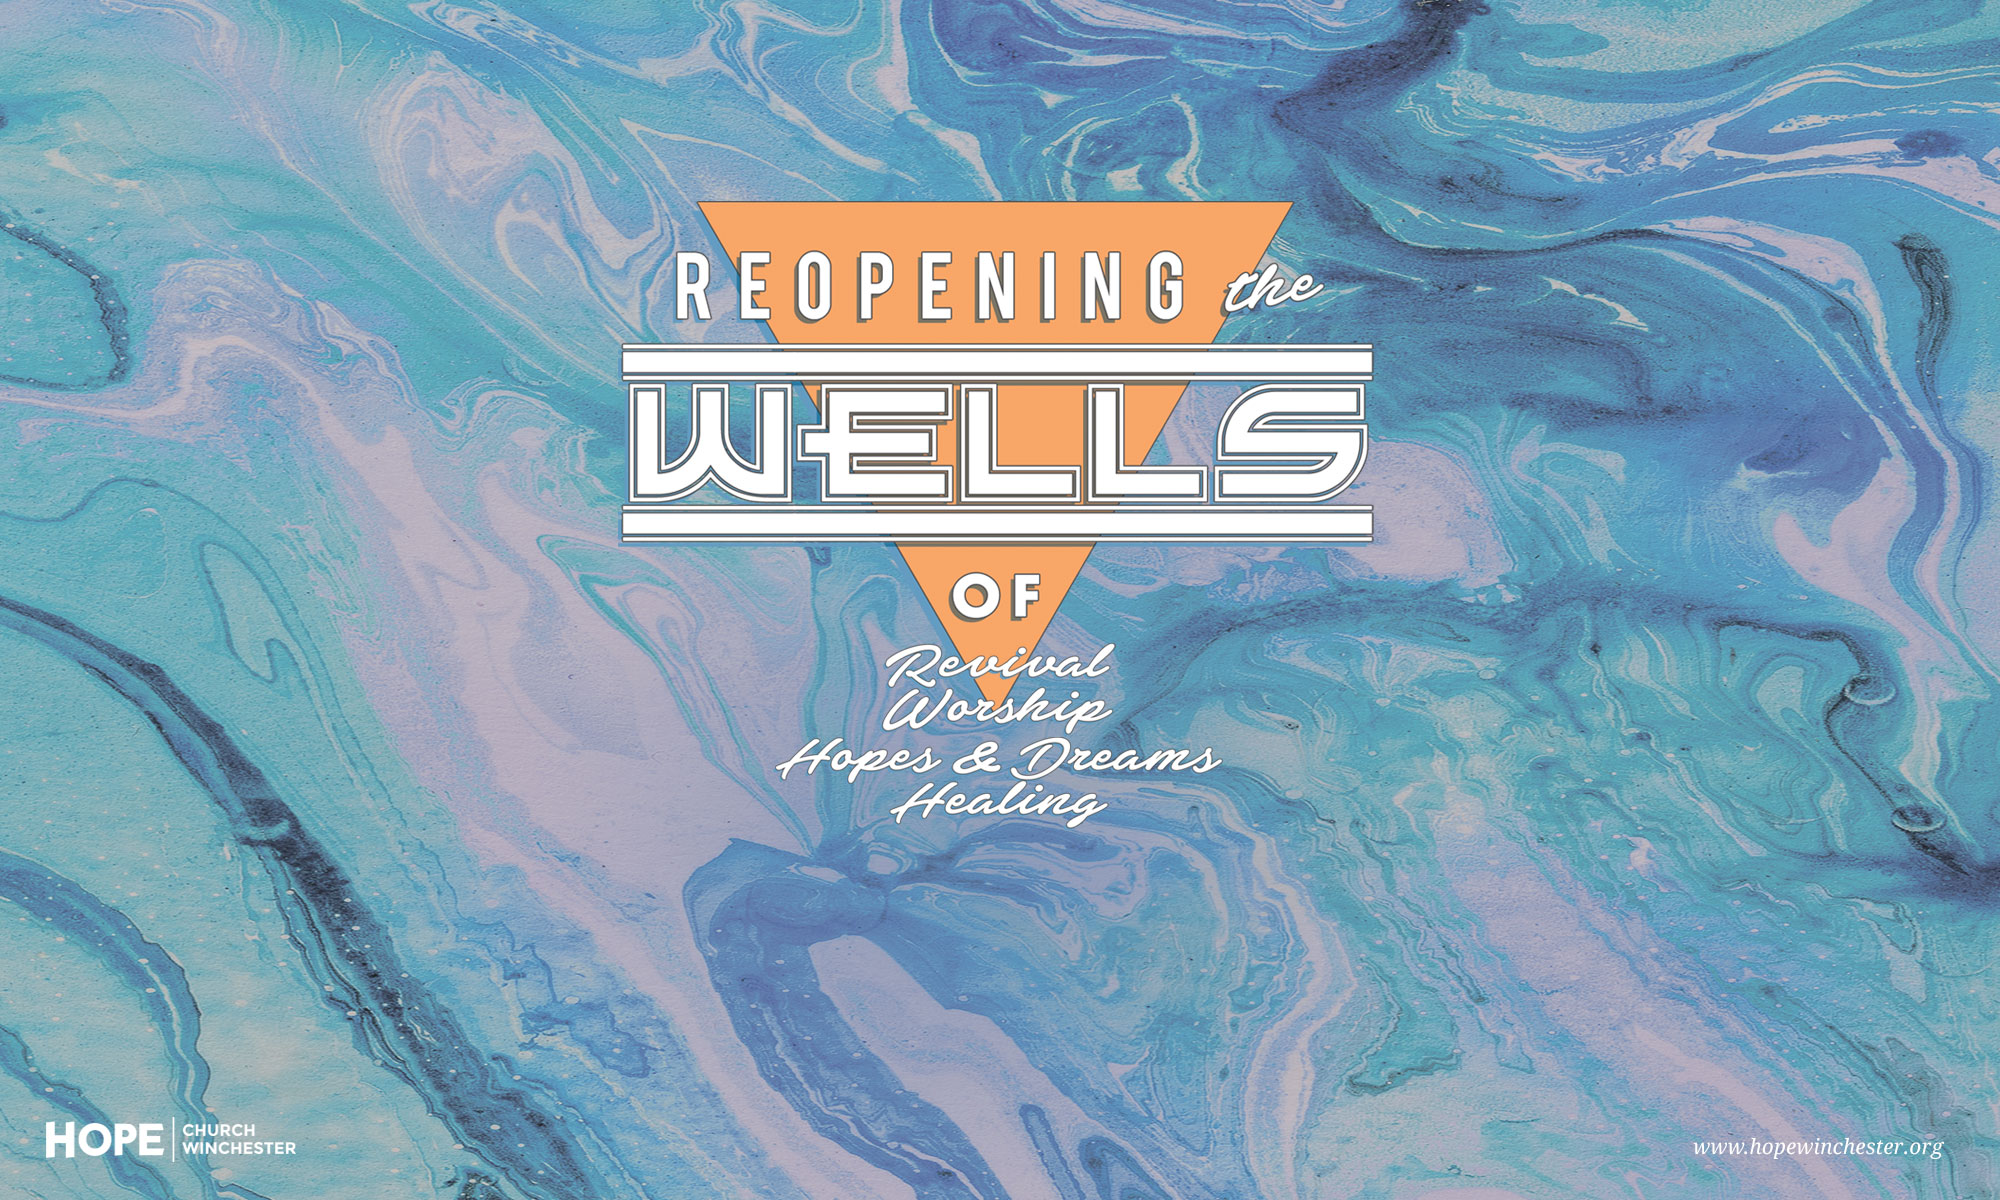 W-Home-Reopening-Wells